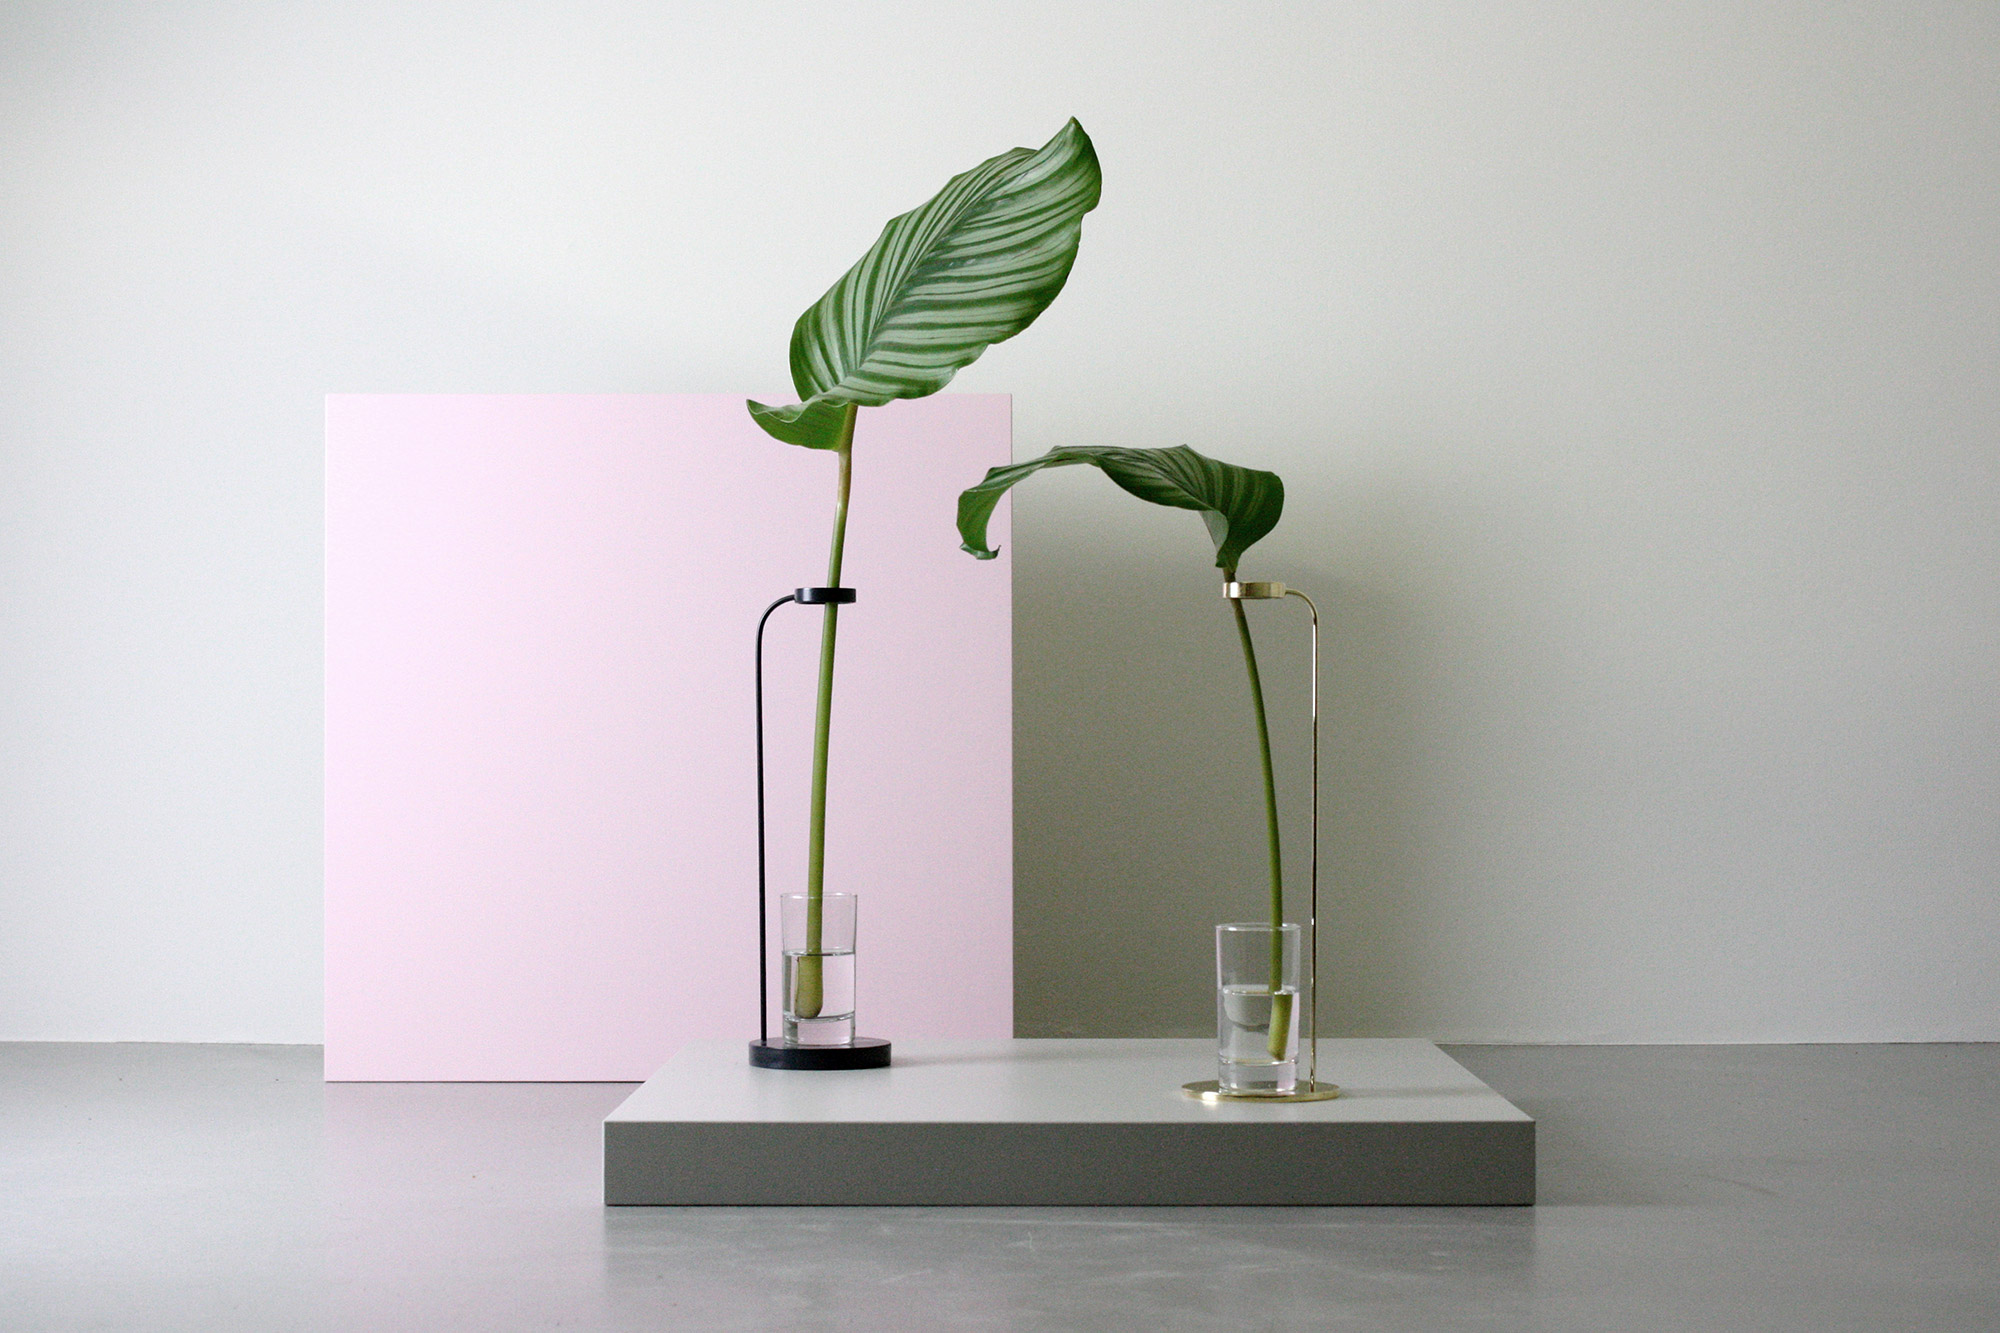 STEM - a vase with space for just one flower stem. This is Danish minimalist design in its purest form.